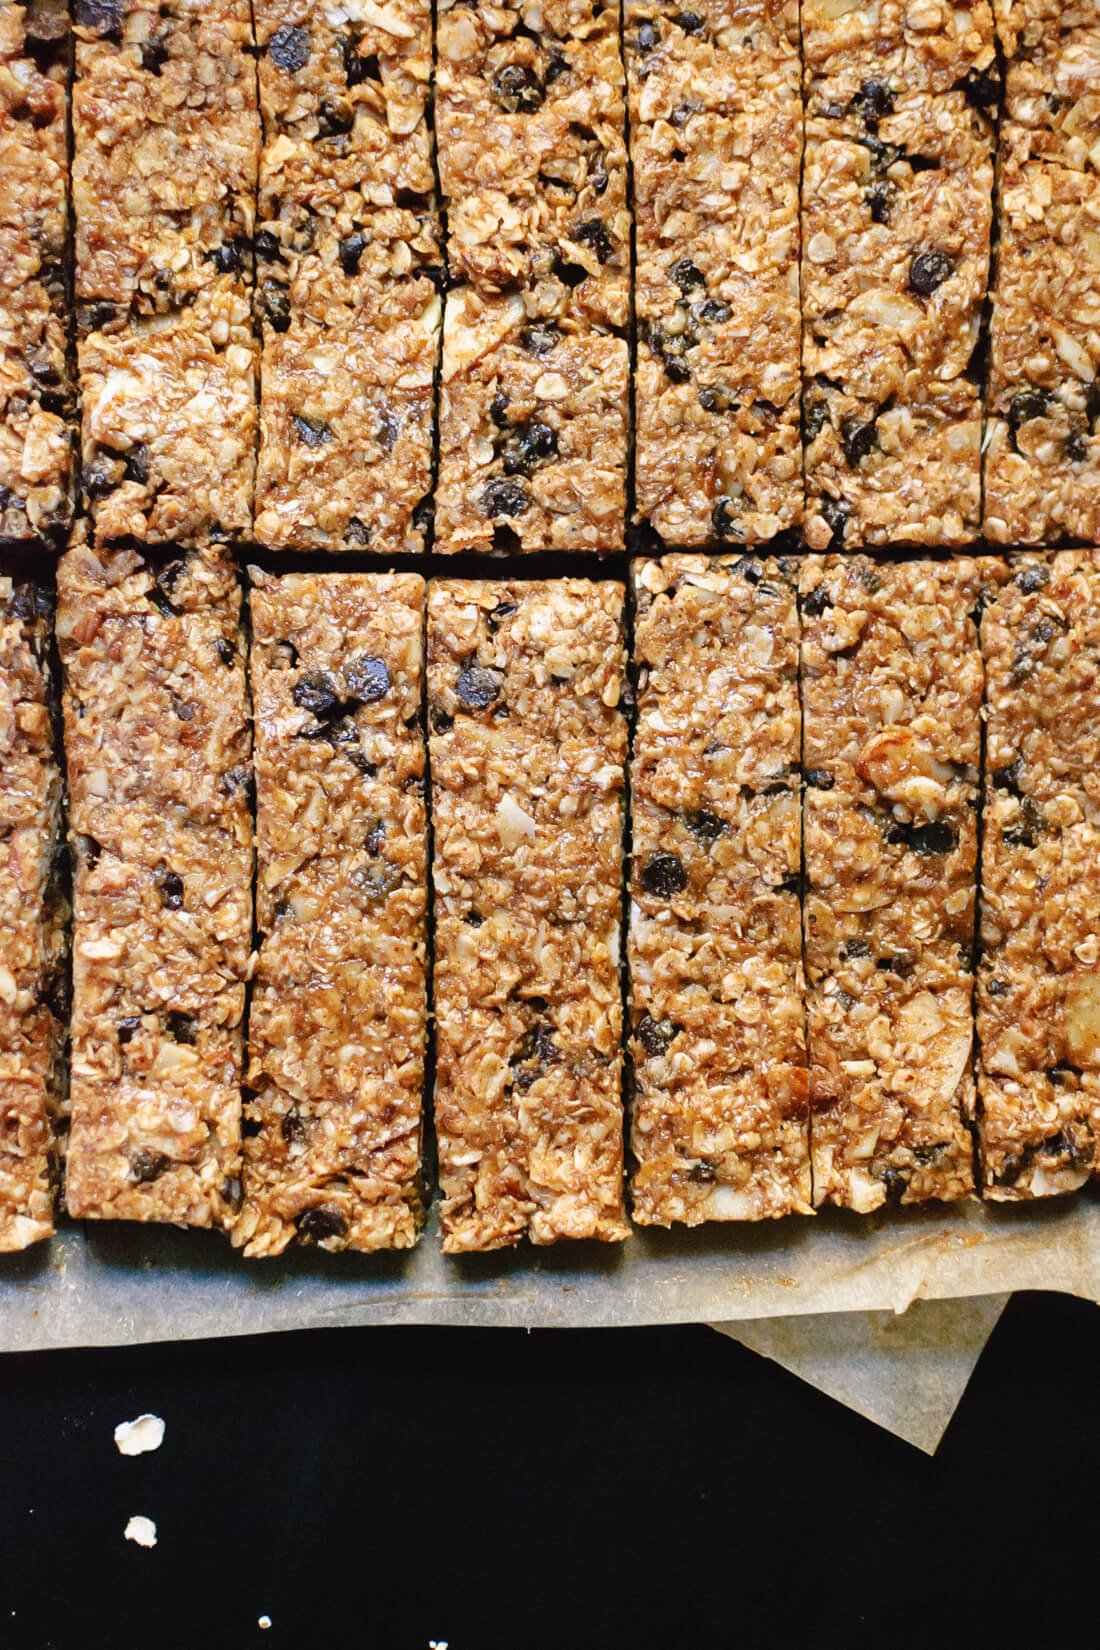 Gluten-free, naturally sweetened, almond chocolate chip granola bars